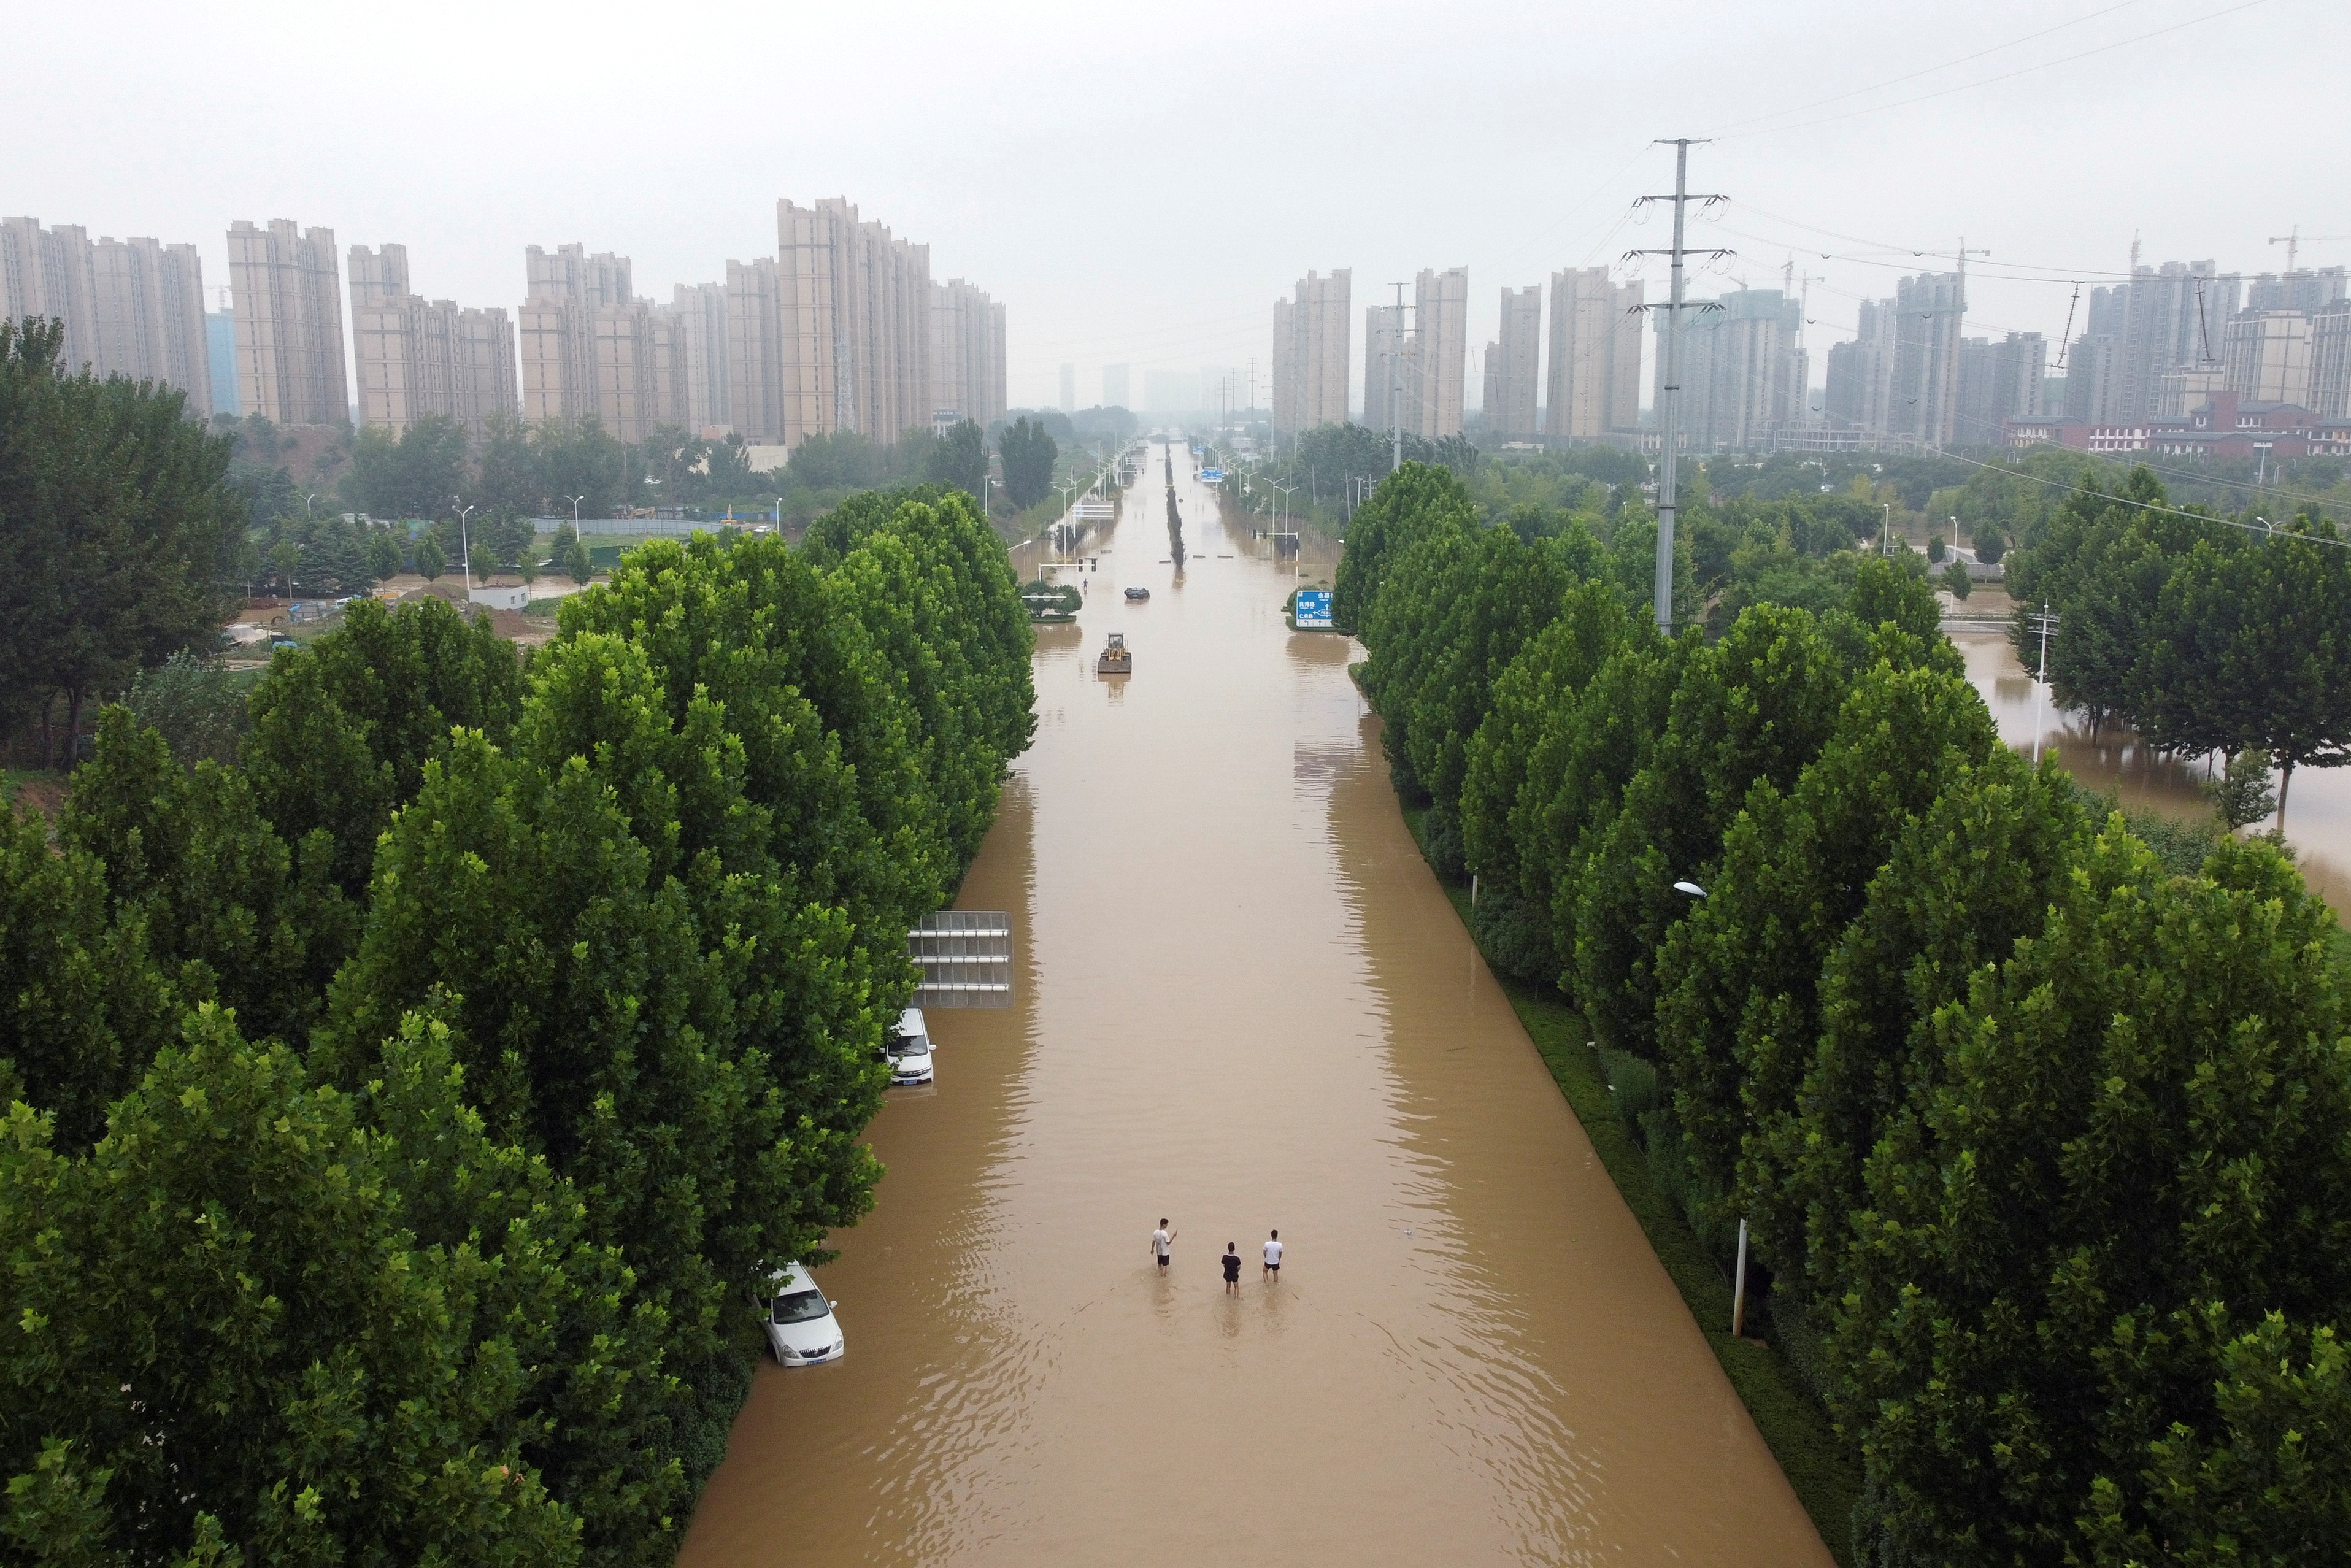 An aerial view shows a flooded road following heavy rainfall in Zhengzhou, Henan province, China July 23, 2021. Picture taken with a drone. REUTERS/Aly Song/File Photo